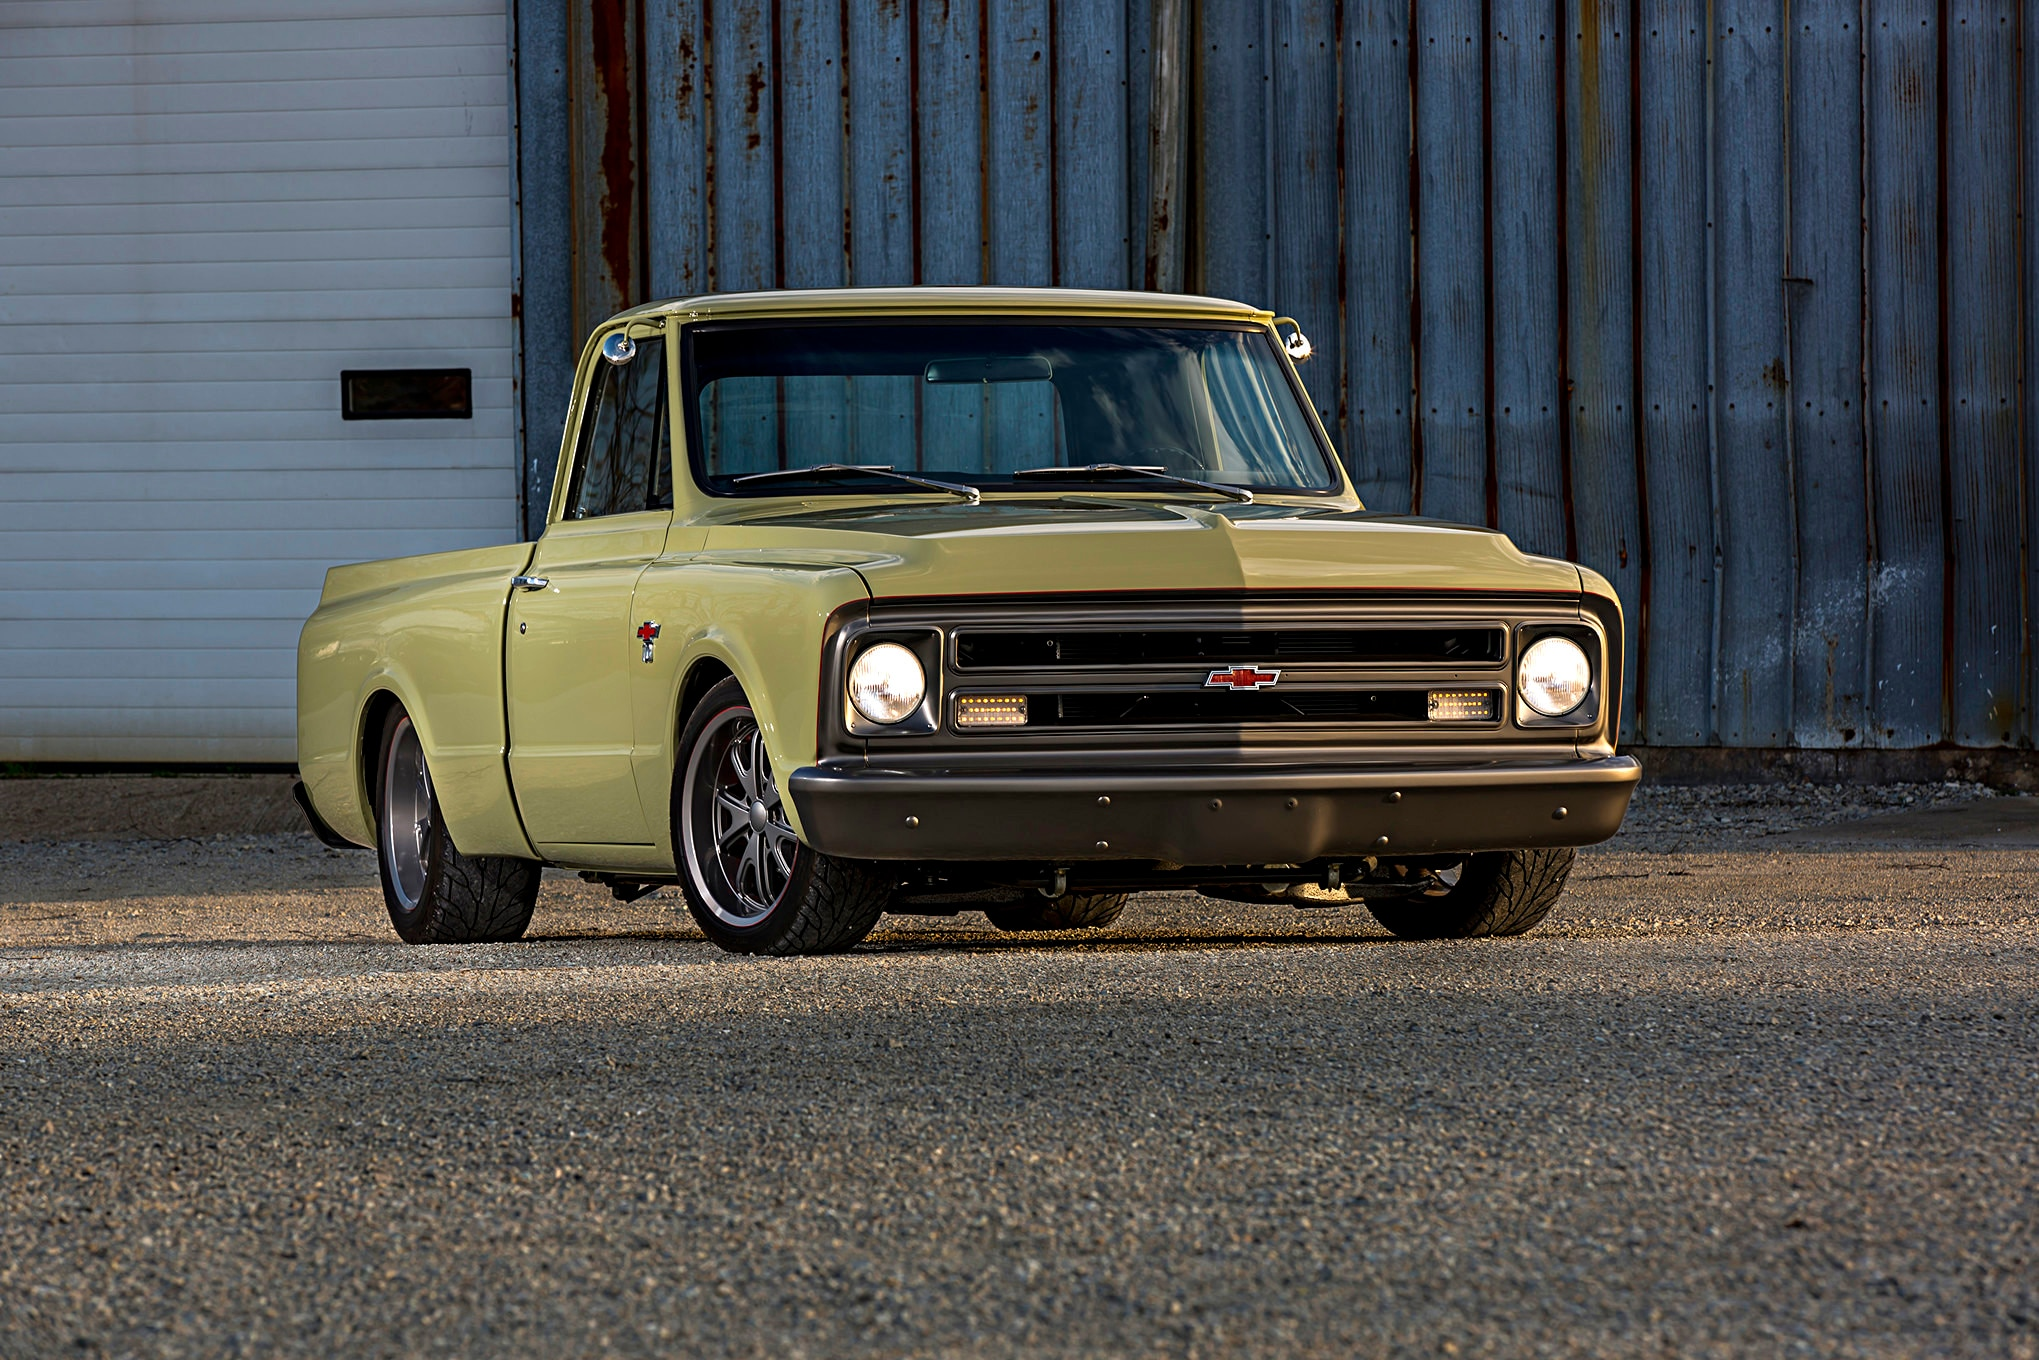 1968 Chevy C10 Lifted